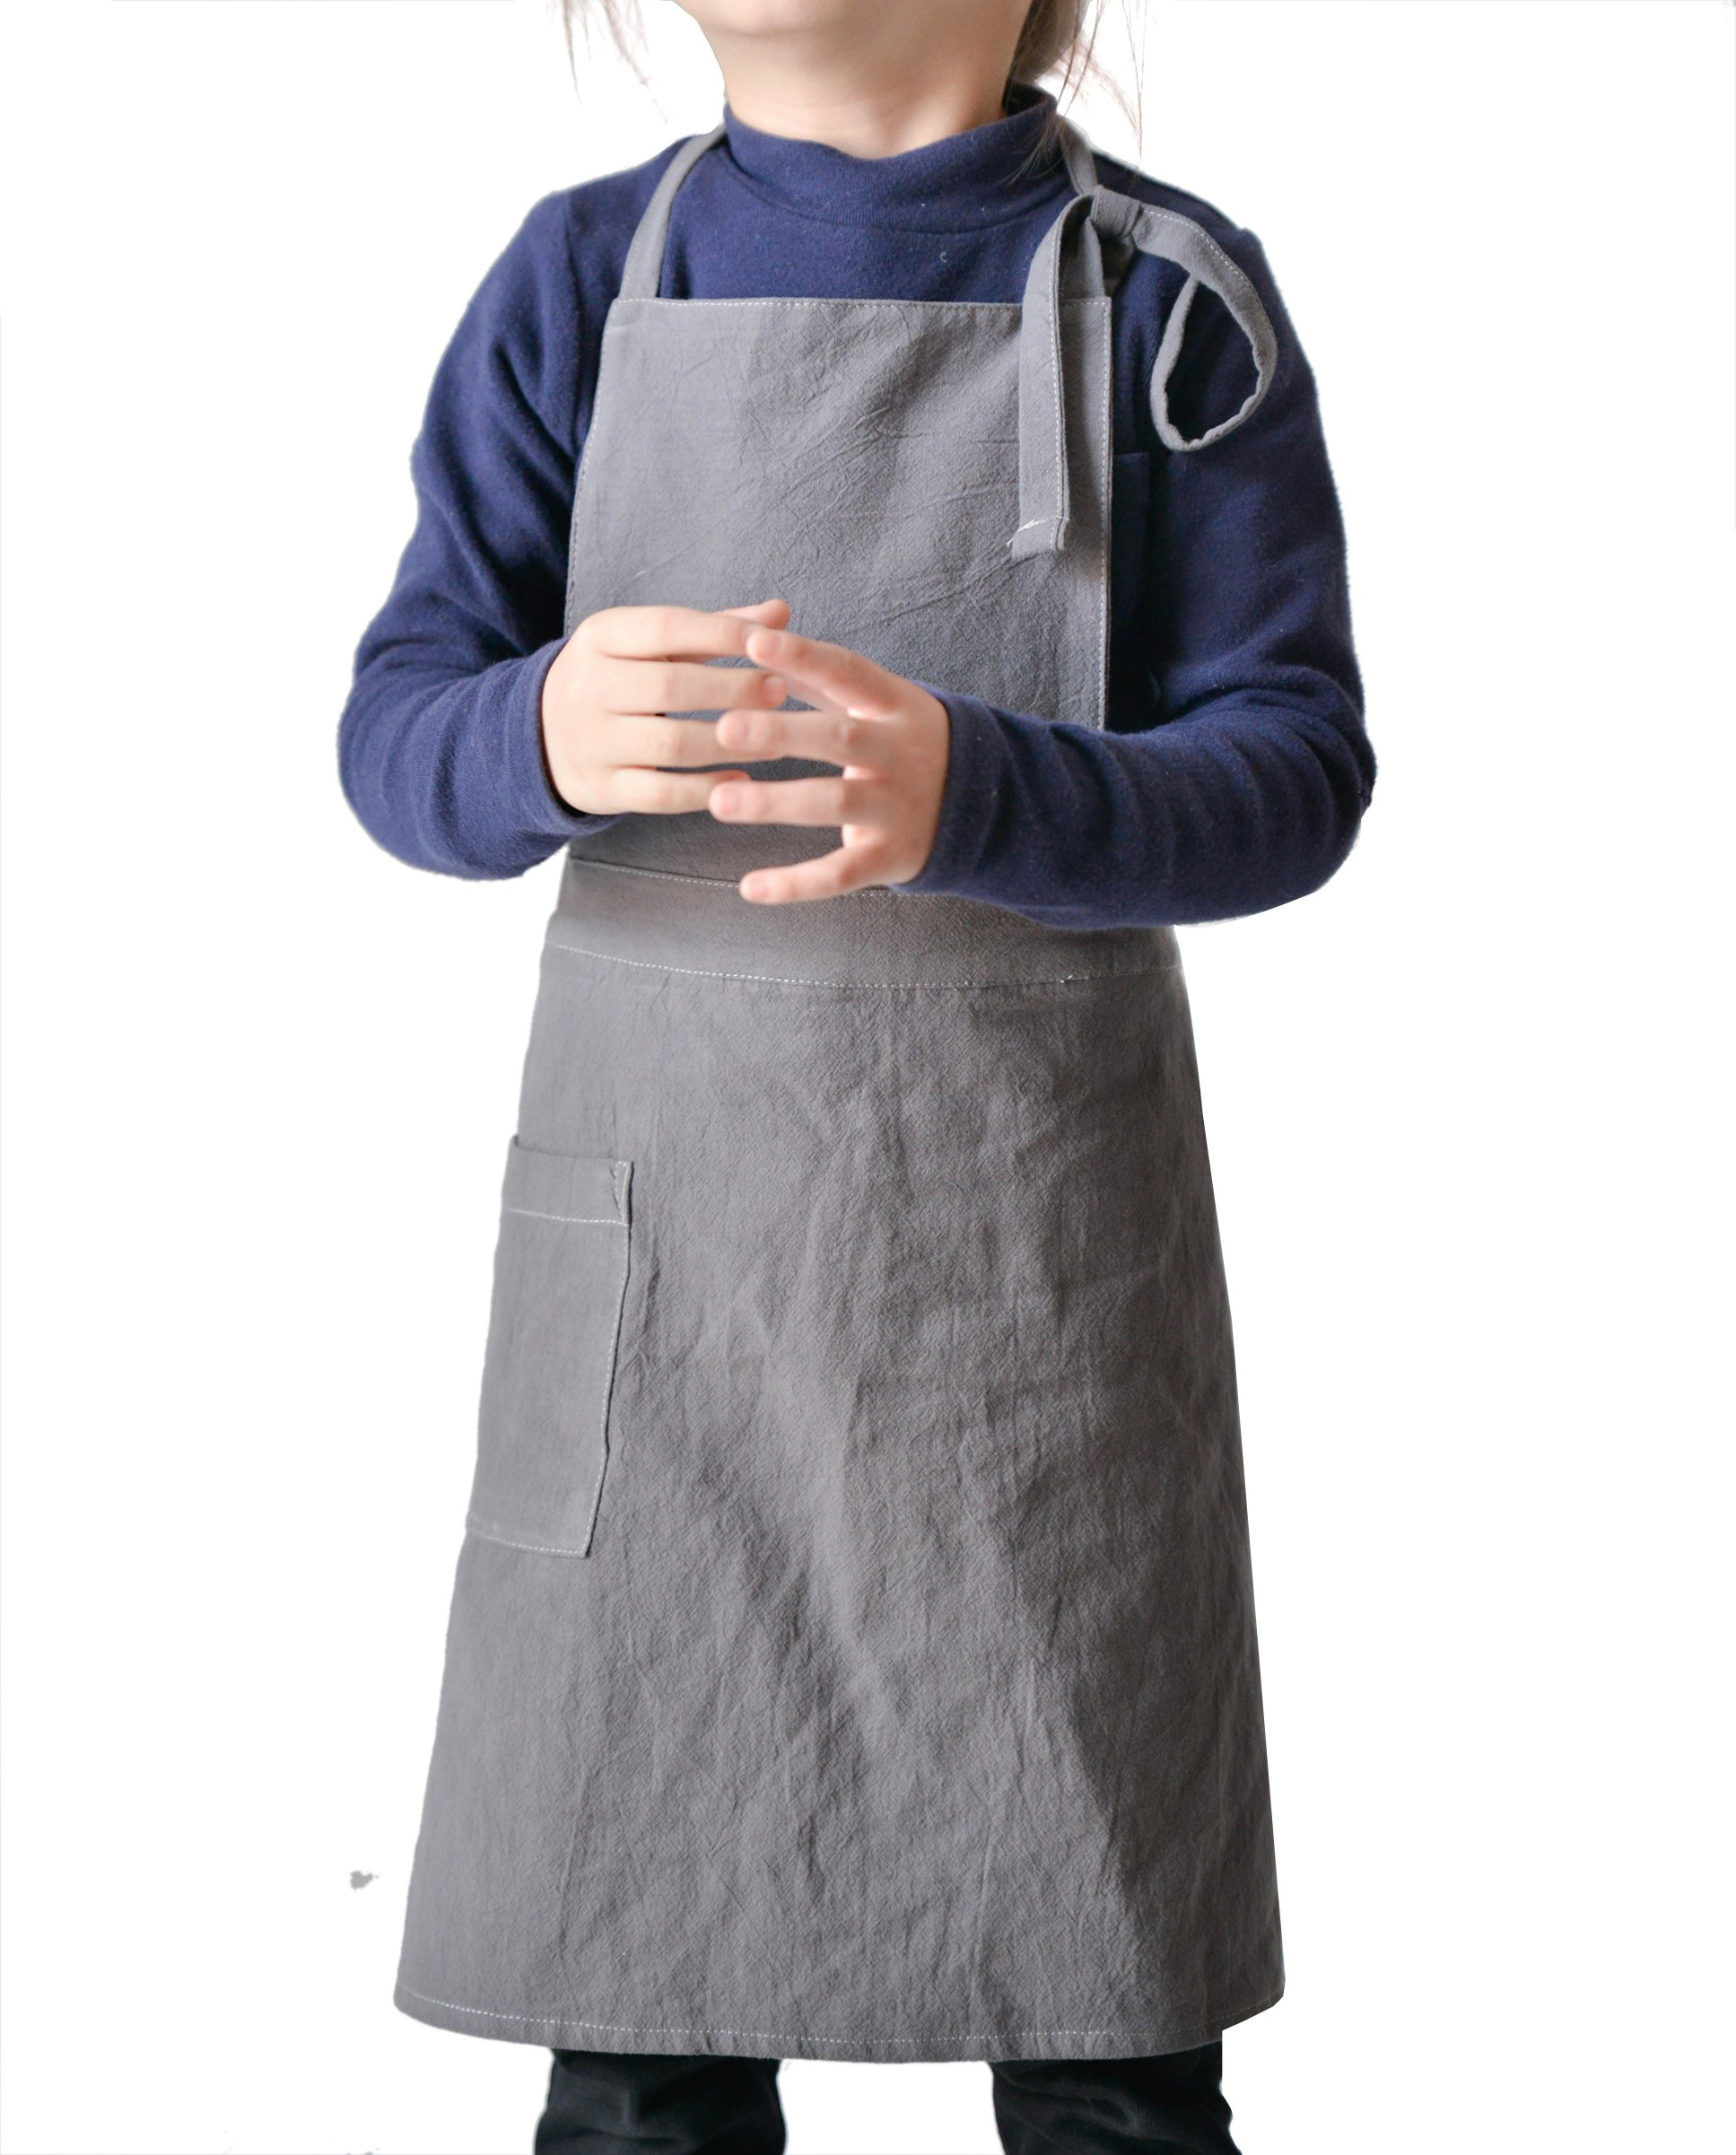 Children Bib Apron Kids Apron with 1 Pocket and Adjustable Neck for Kitchen,Classroom,Community Event,Arts and Crafs, Painting and Baking,Age 6-12(Medium,Dark Grey)